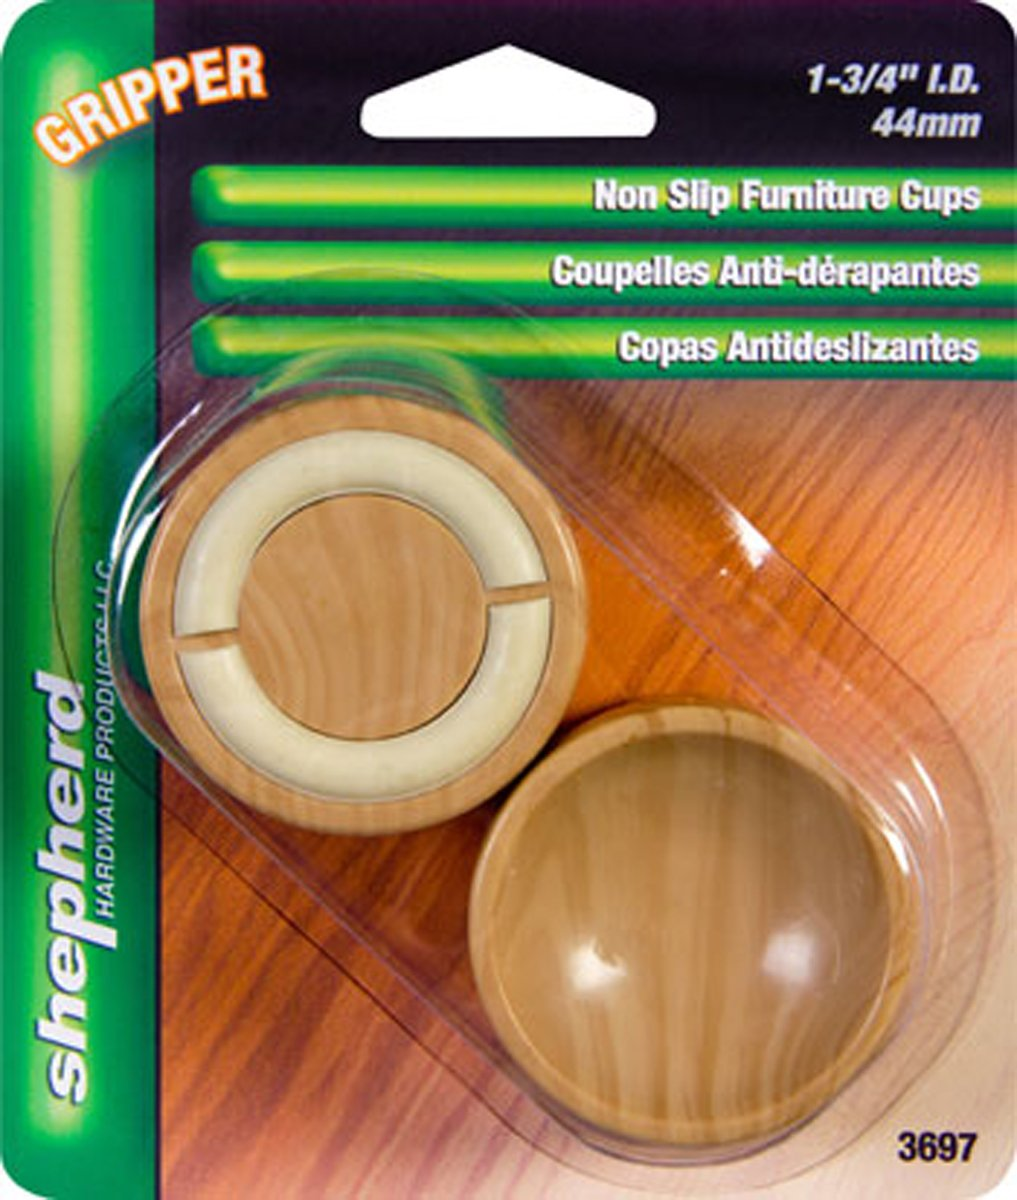 Shepherd Hardware 3697 1-3/4-Inch Non-Slip Furniture Cups, 4-Pack